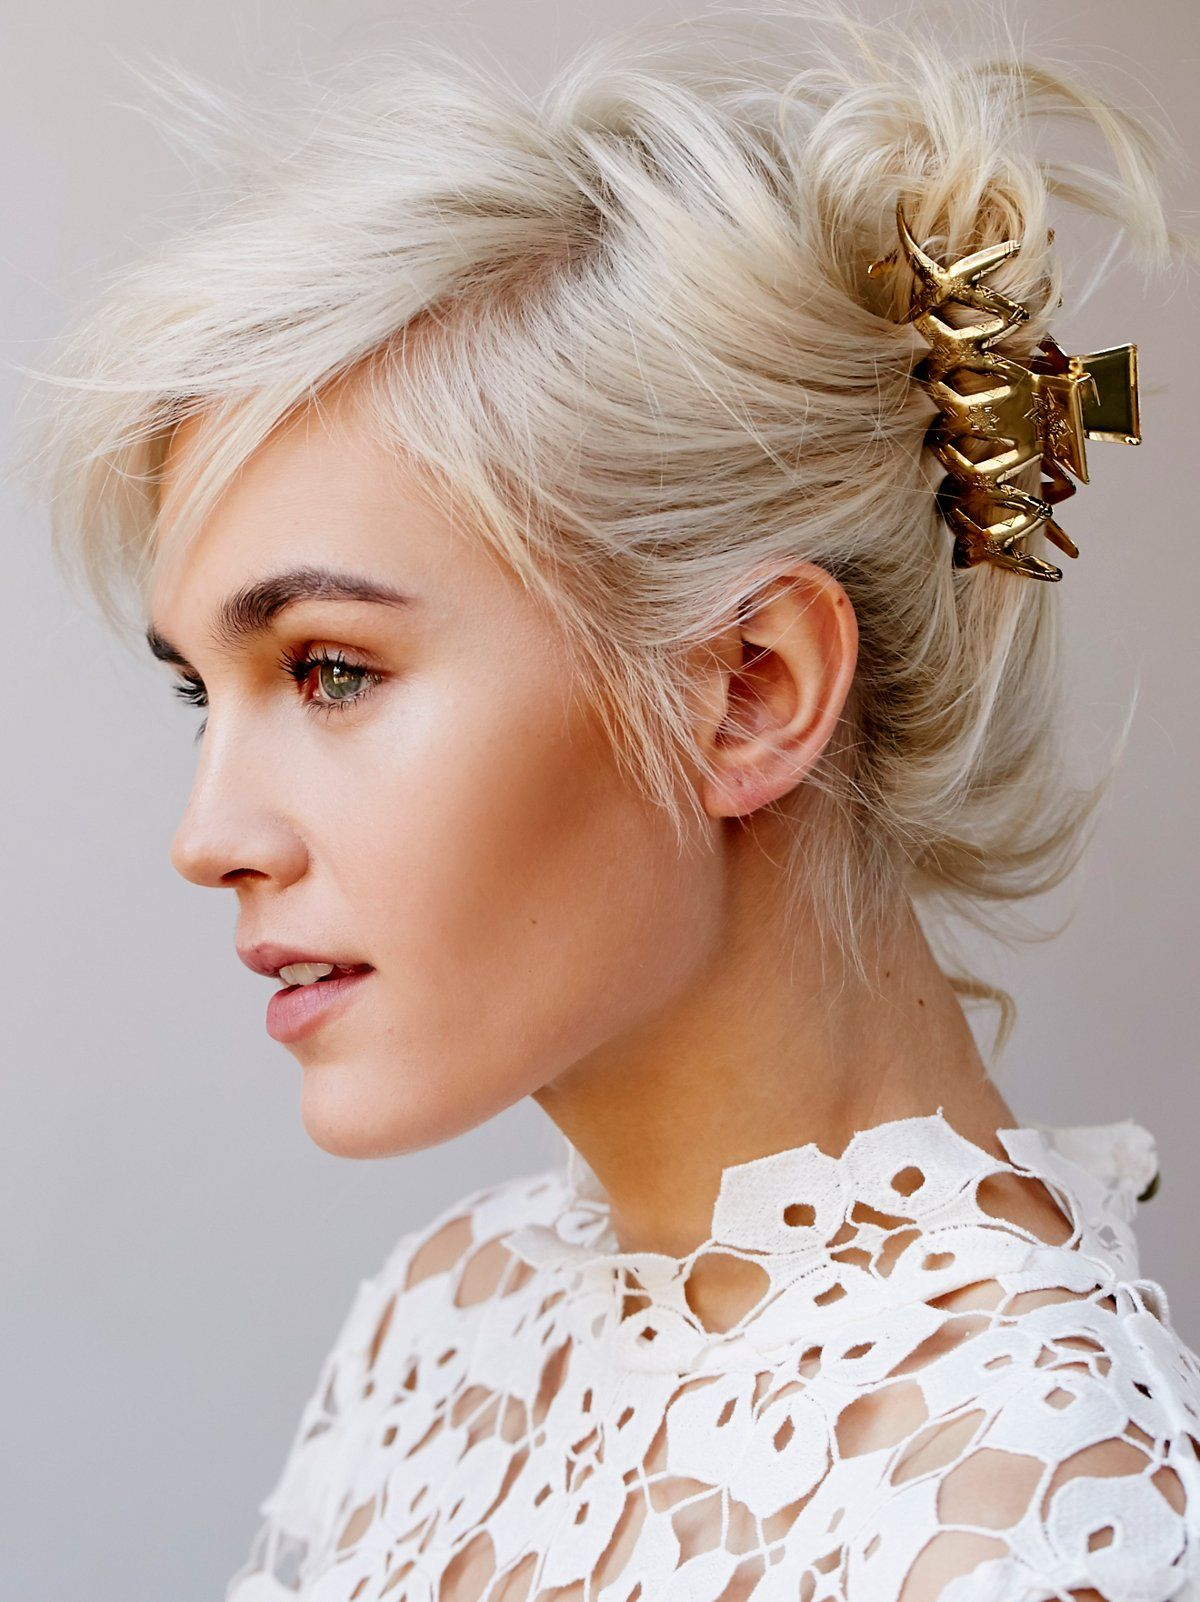 how-to-style-hair-accessories-claw-clips-butterfly-banana-mini-gold-frenchtwist.jpg